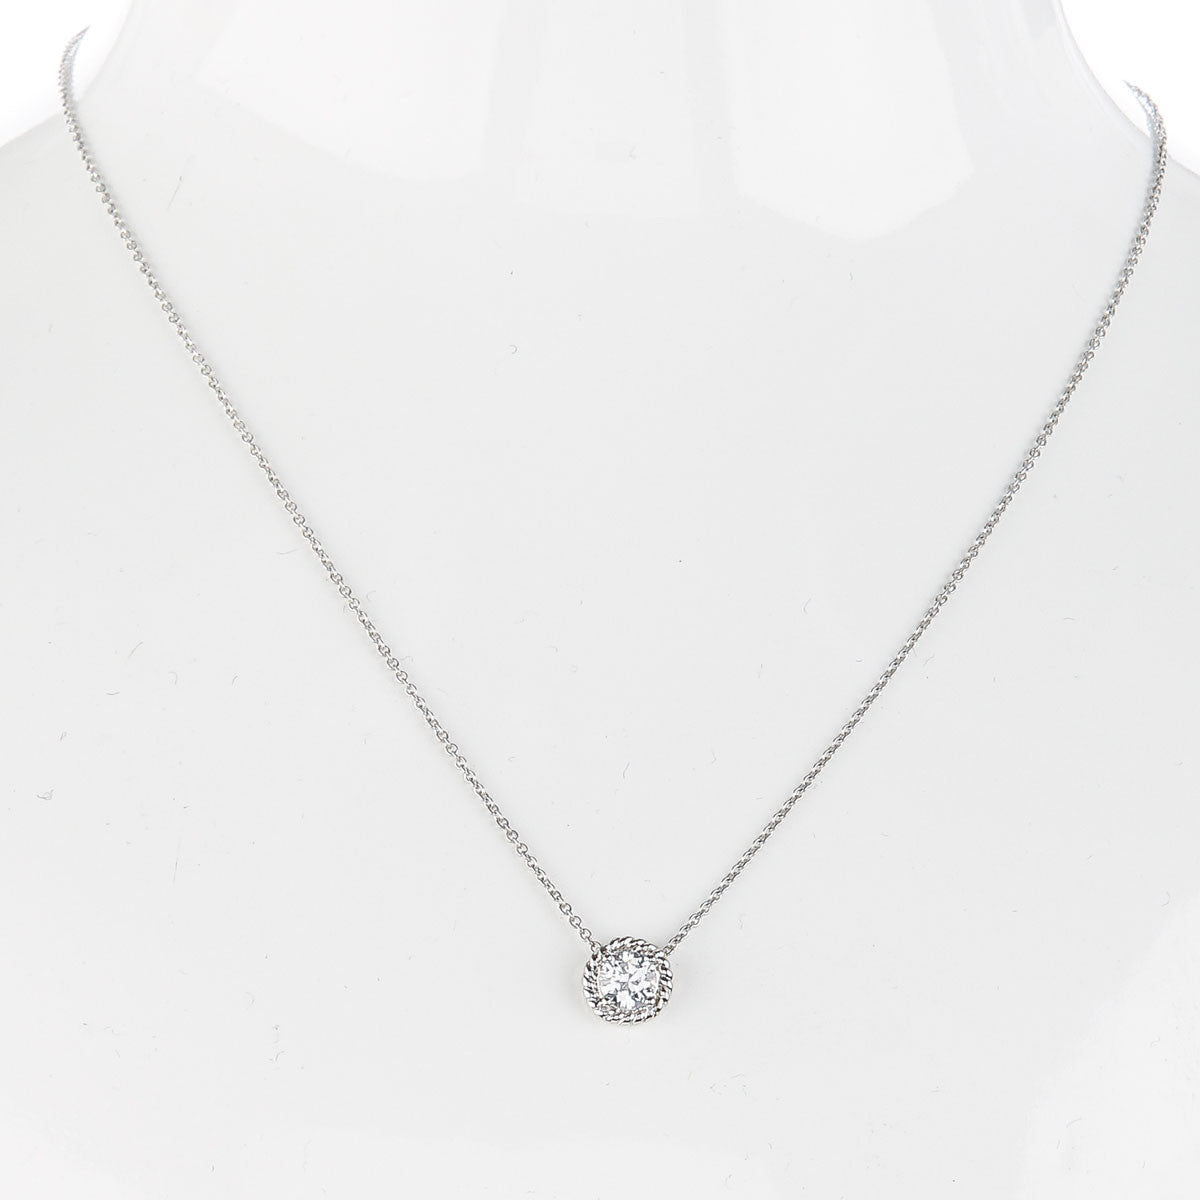 Bezel Detail Solitaire Necklace - The Firestone Collection - Fashion Jewelry & Accessories